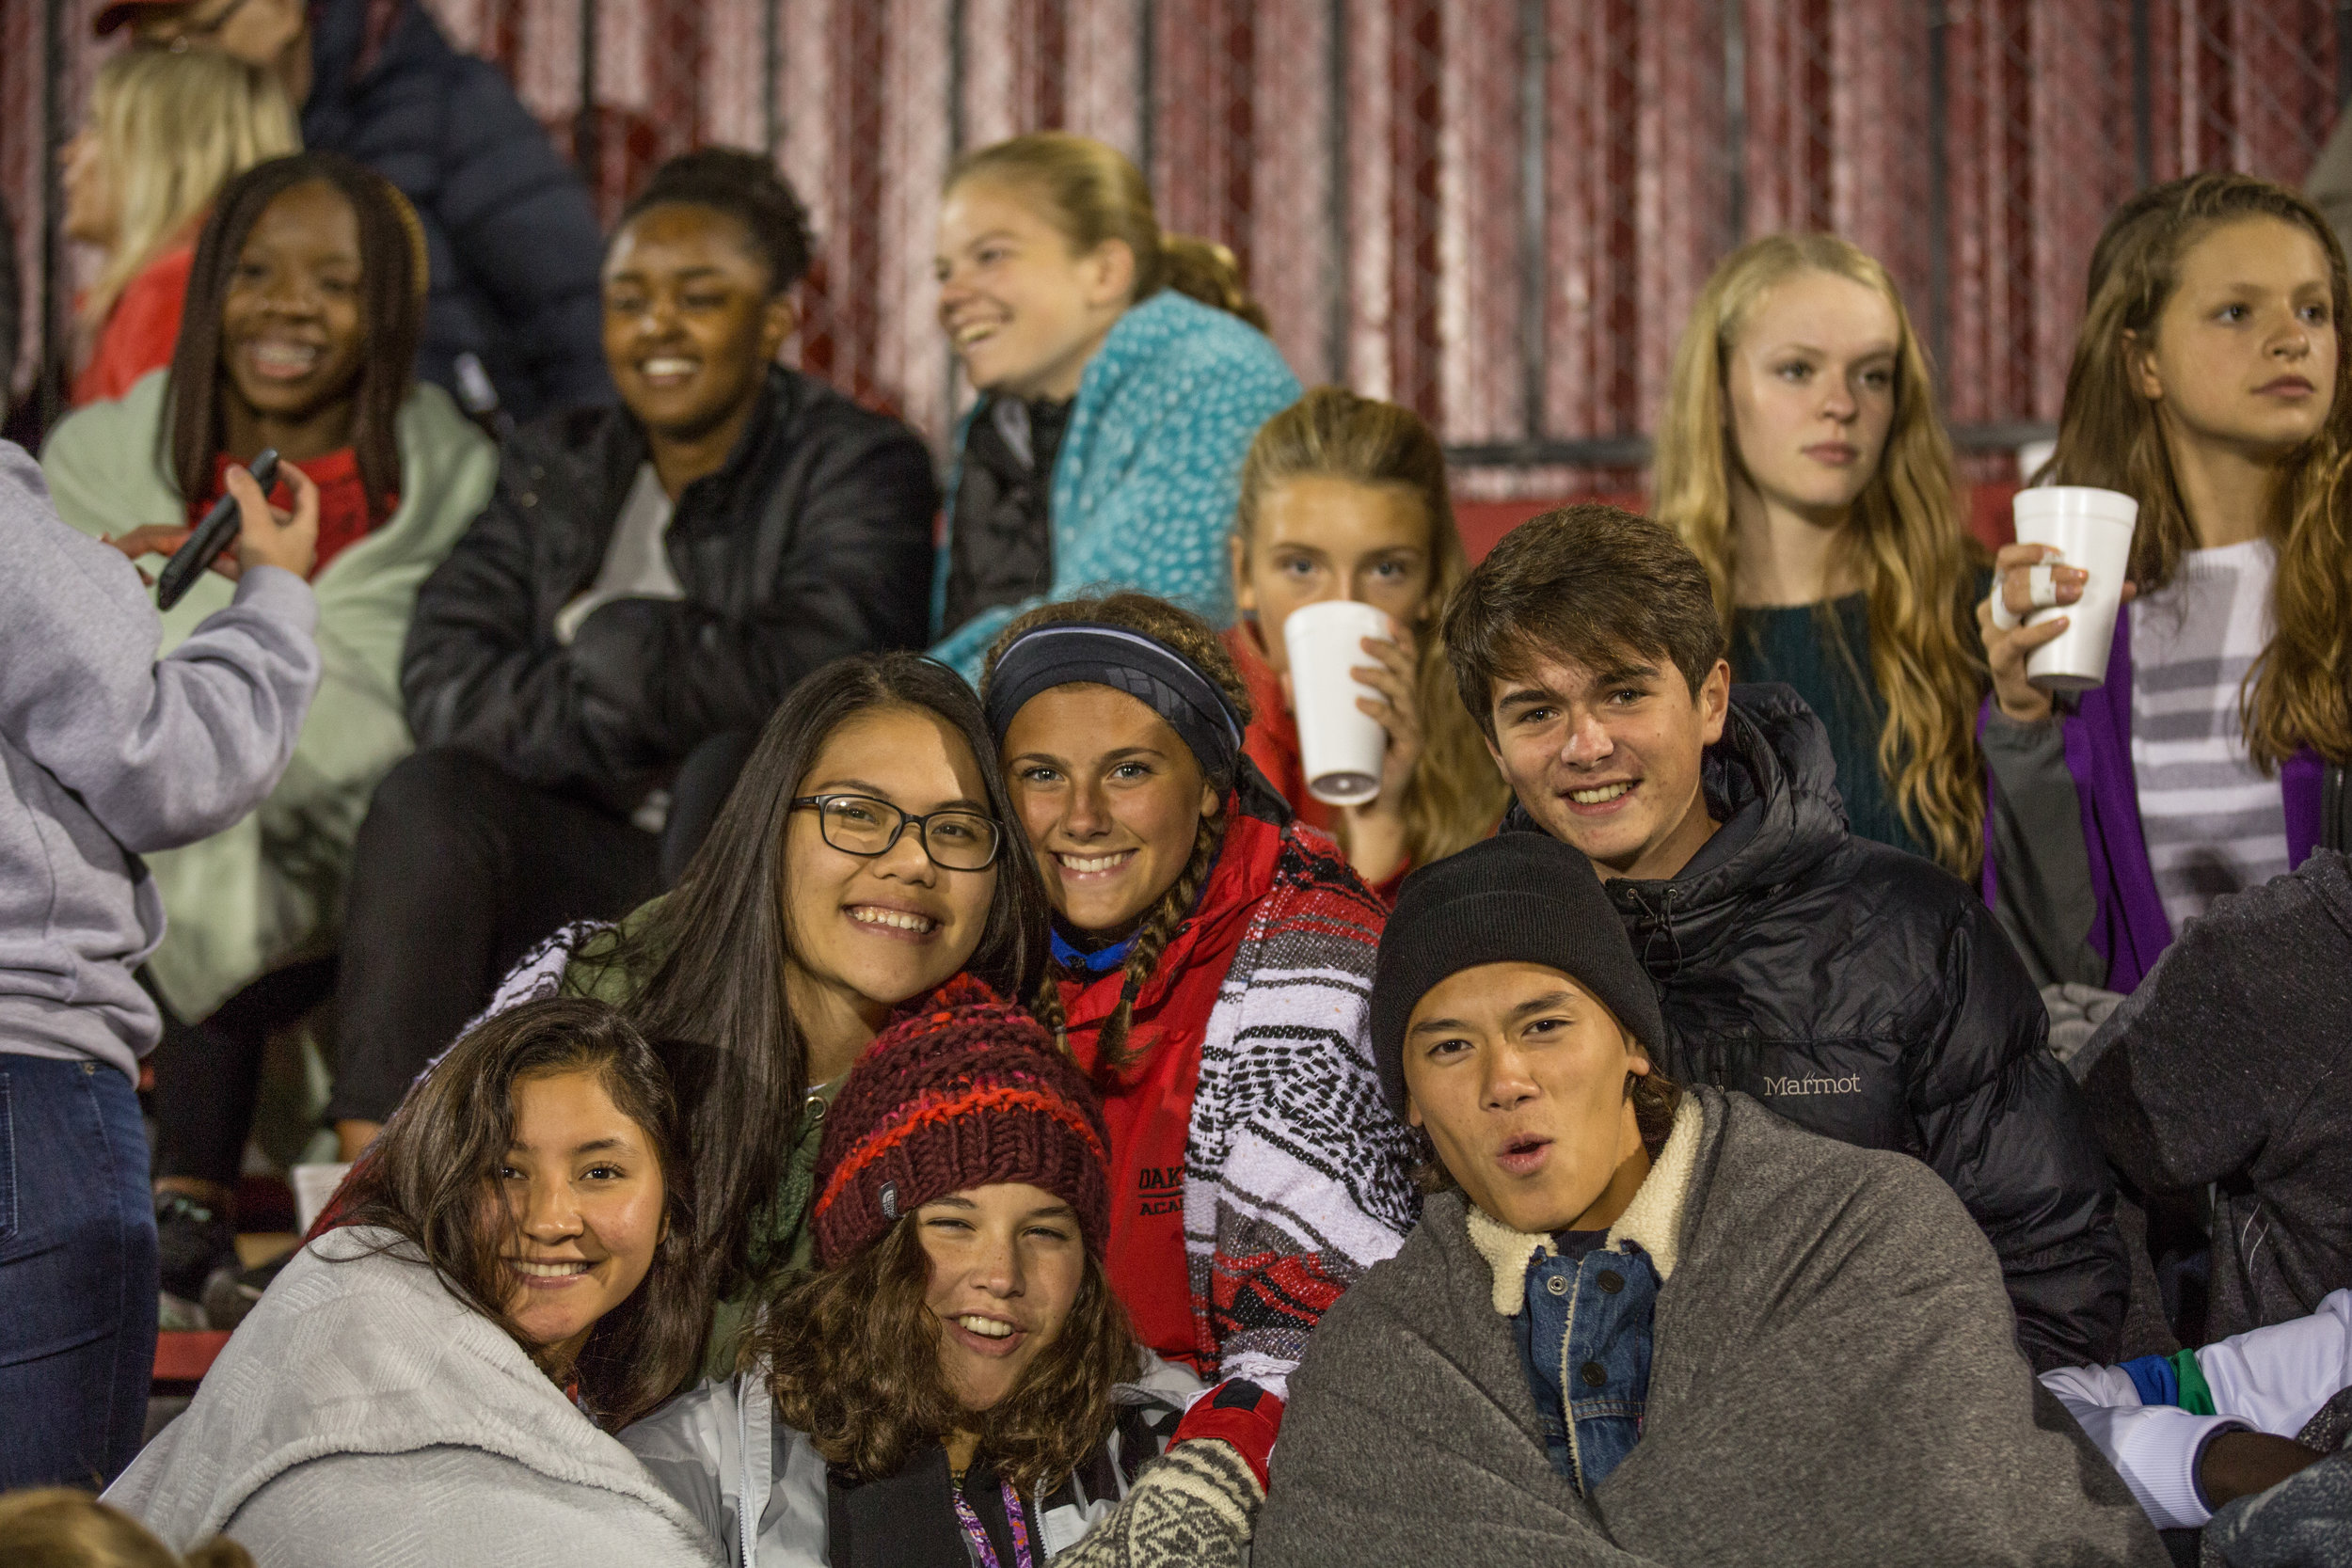 Students unite at sporting events, playing and cheering for friends as a part of the Comet community.